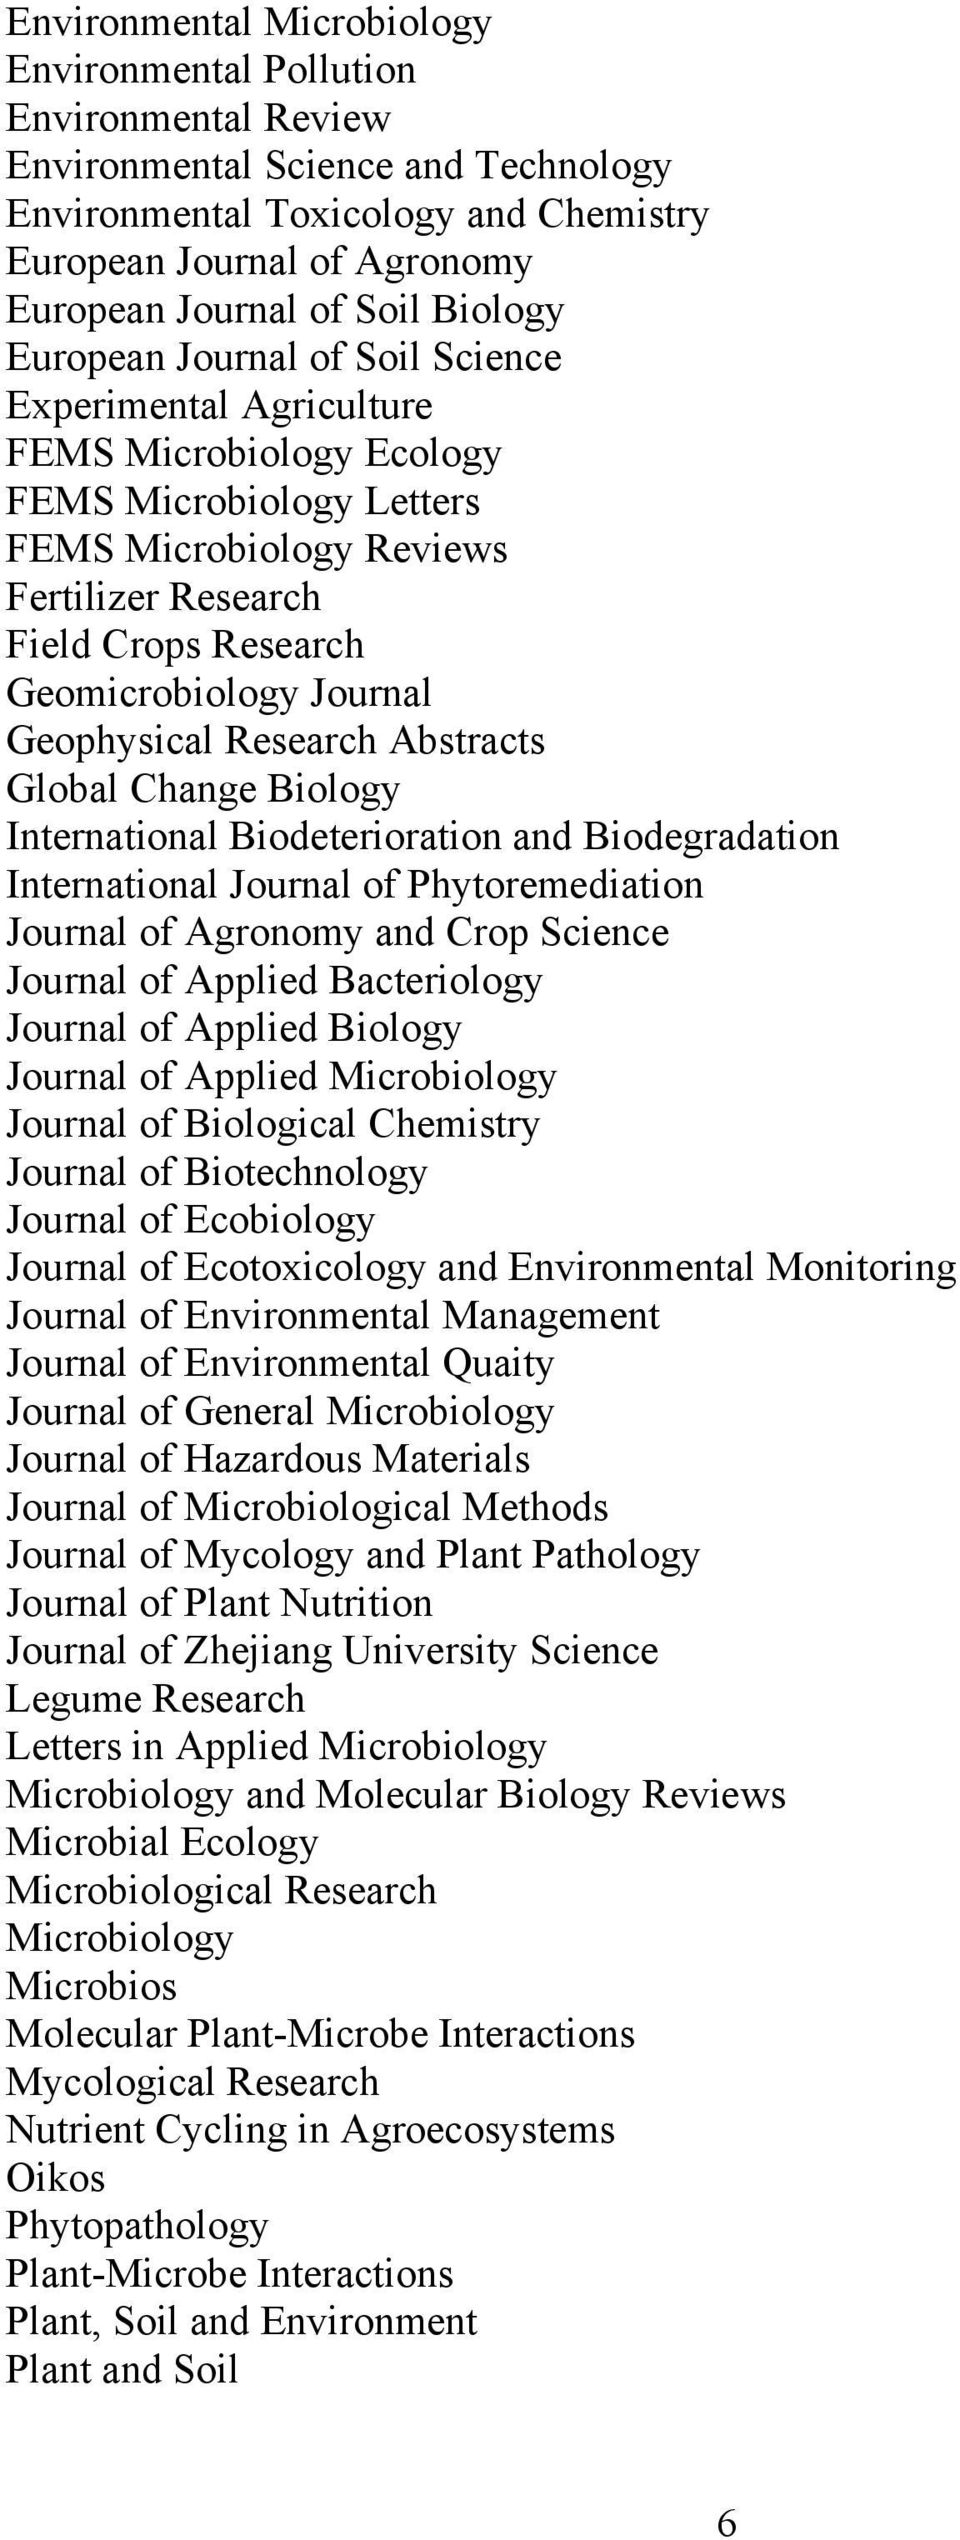 Geomicrobiology Journal Geophysical Research Abstracts Global Change Biology International Biodeterioration and Biodegradation International Journal of Phytoremediation Journal of Agronomy and Crop